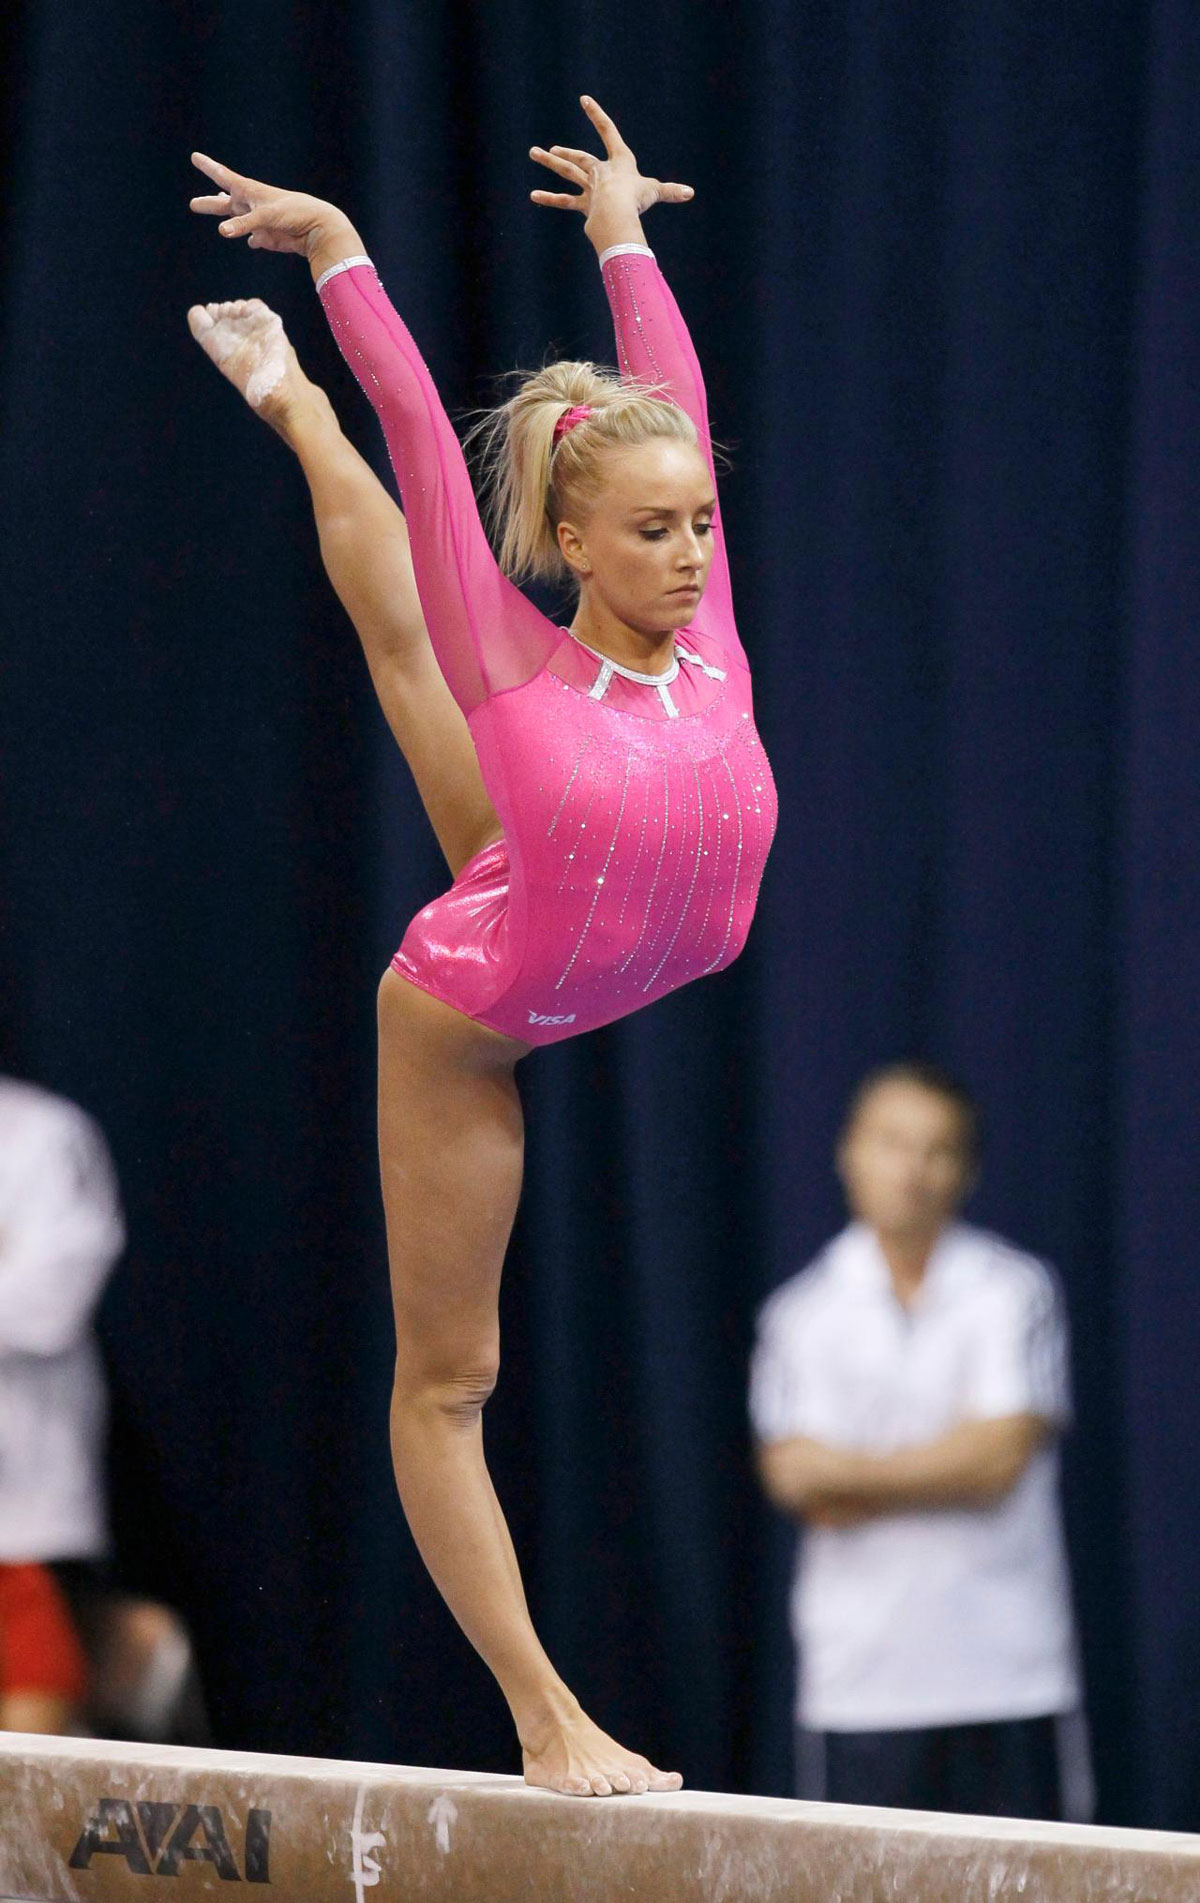 NASTIA LIUKIN at US Classic Gymnastics Meeting in Chicago